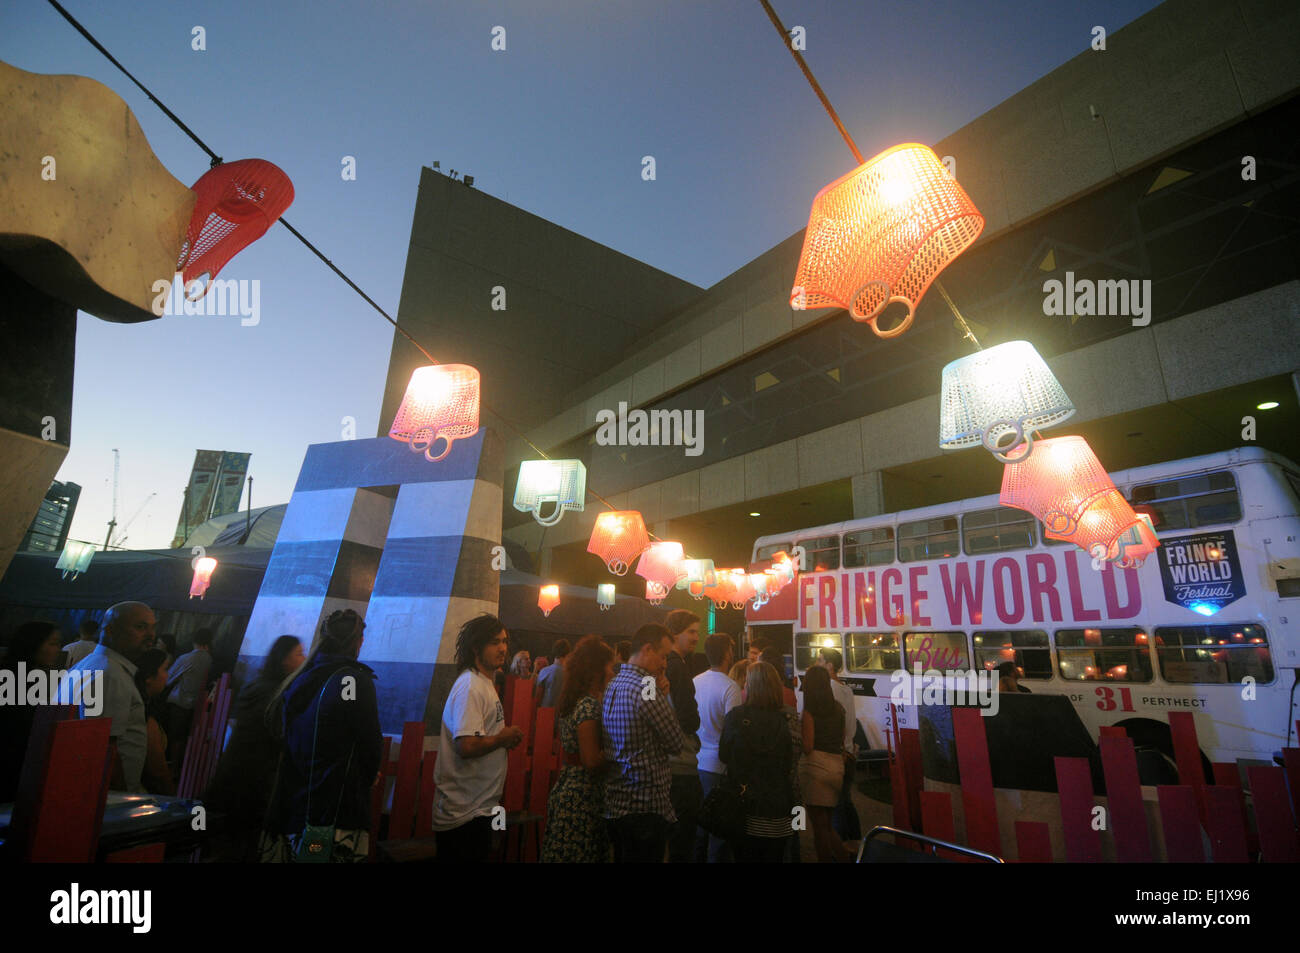 People queue for tickets at the Fringe Festival 2015, Perth, Western Australia. No MR or PR - Stock Image